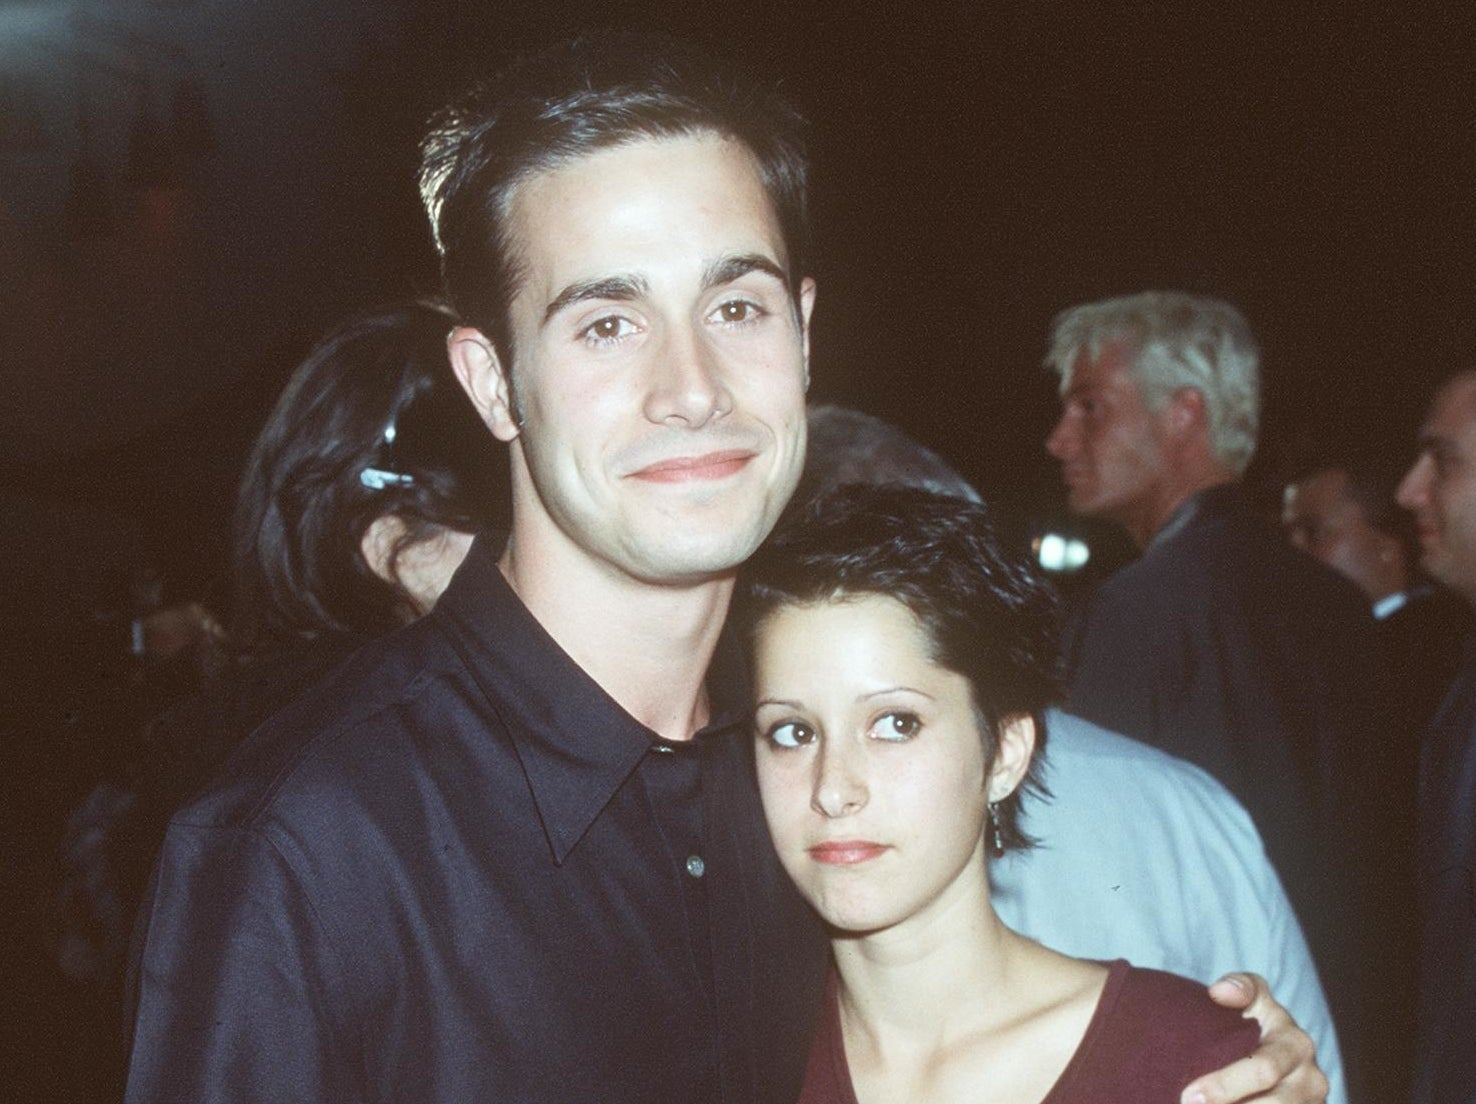 Freddie poses with Kimberly who has a similar short black haircut